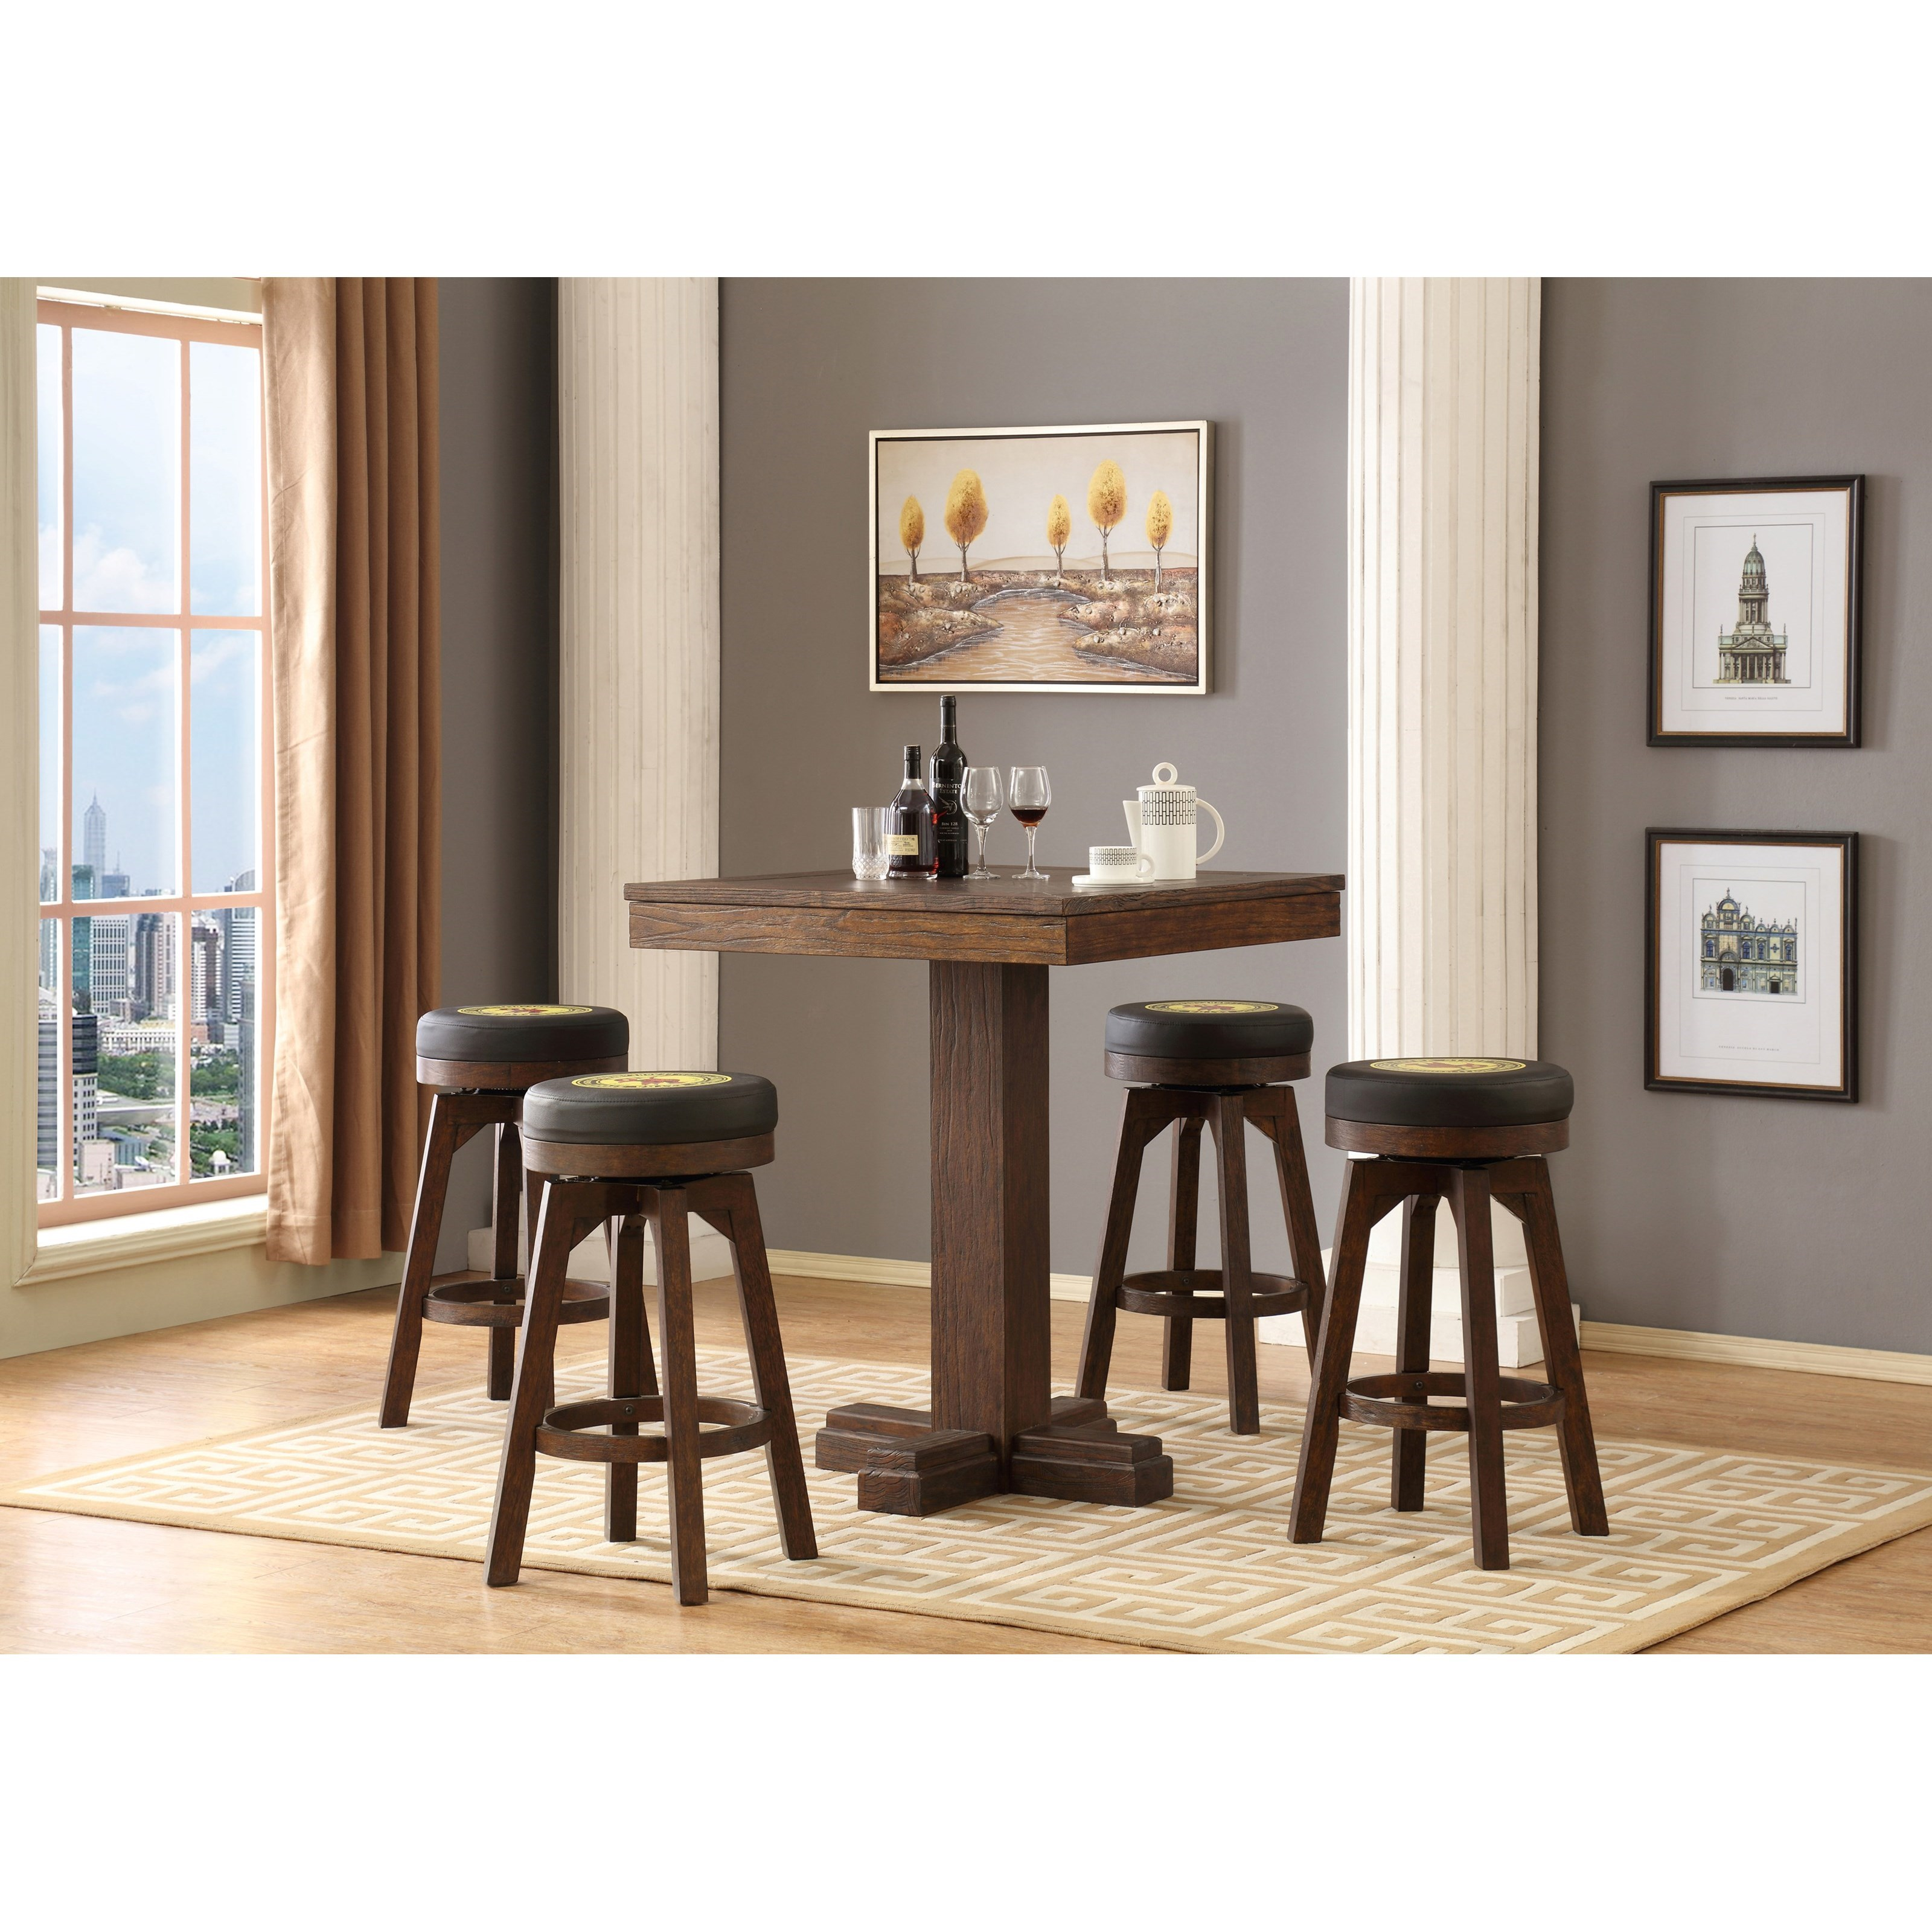 Guinness Bar 5 Pc Pub Table Set by E.C.I. Furniture at Northeast Factory Direct